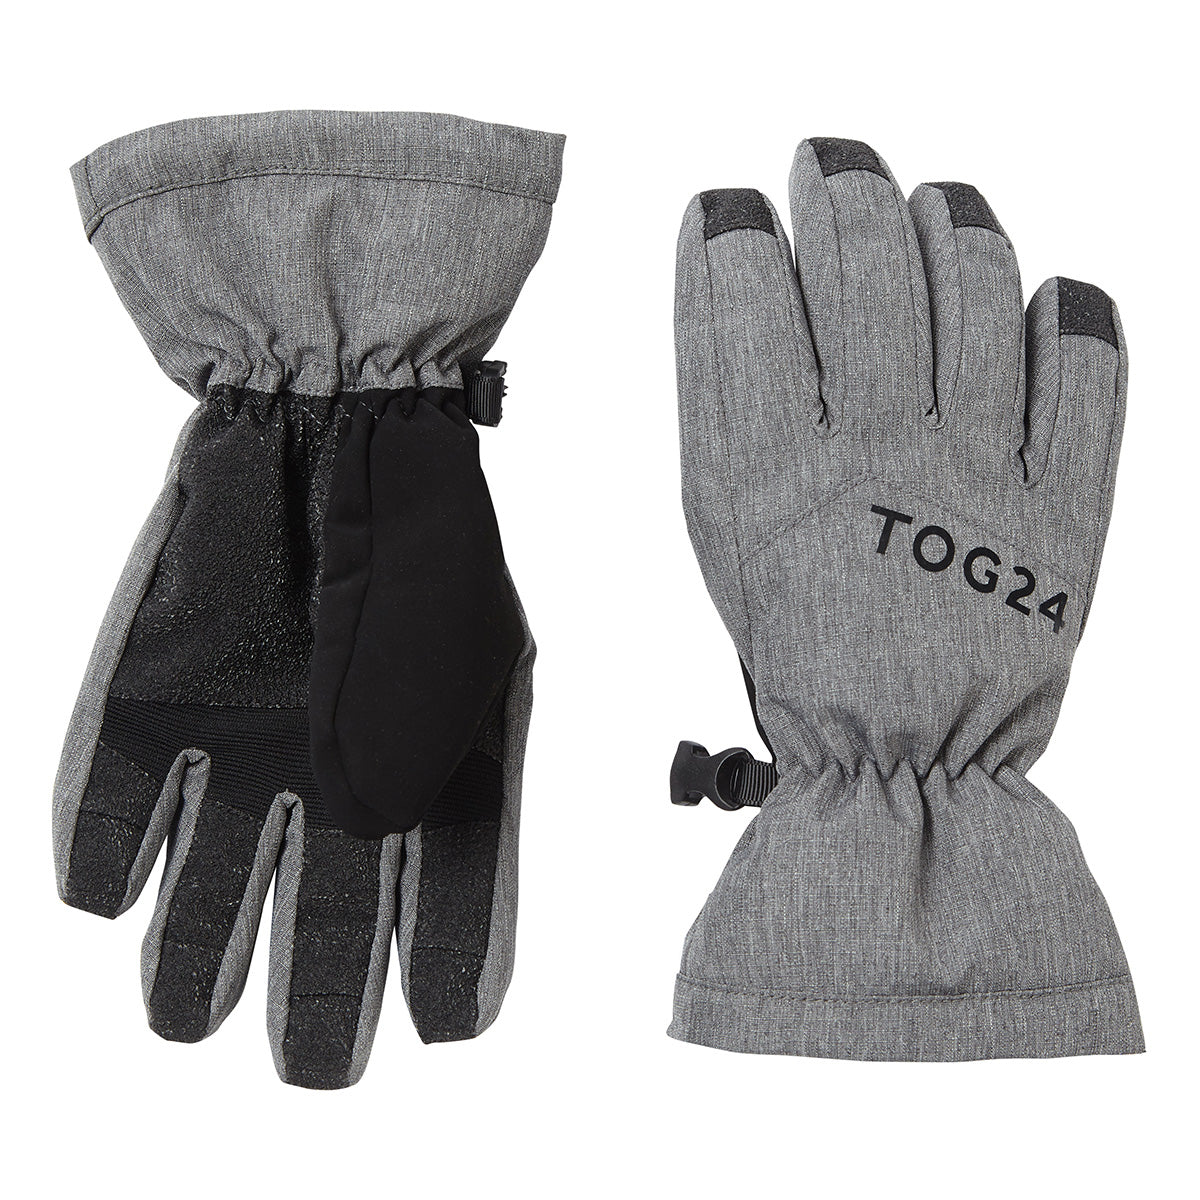 Lockton Waterproof Ski Gloves - Dark Grey Marl